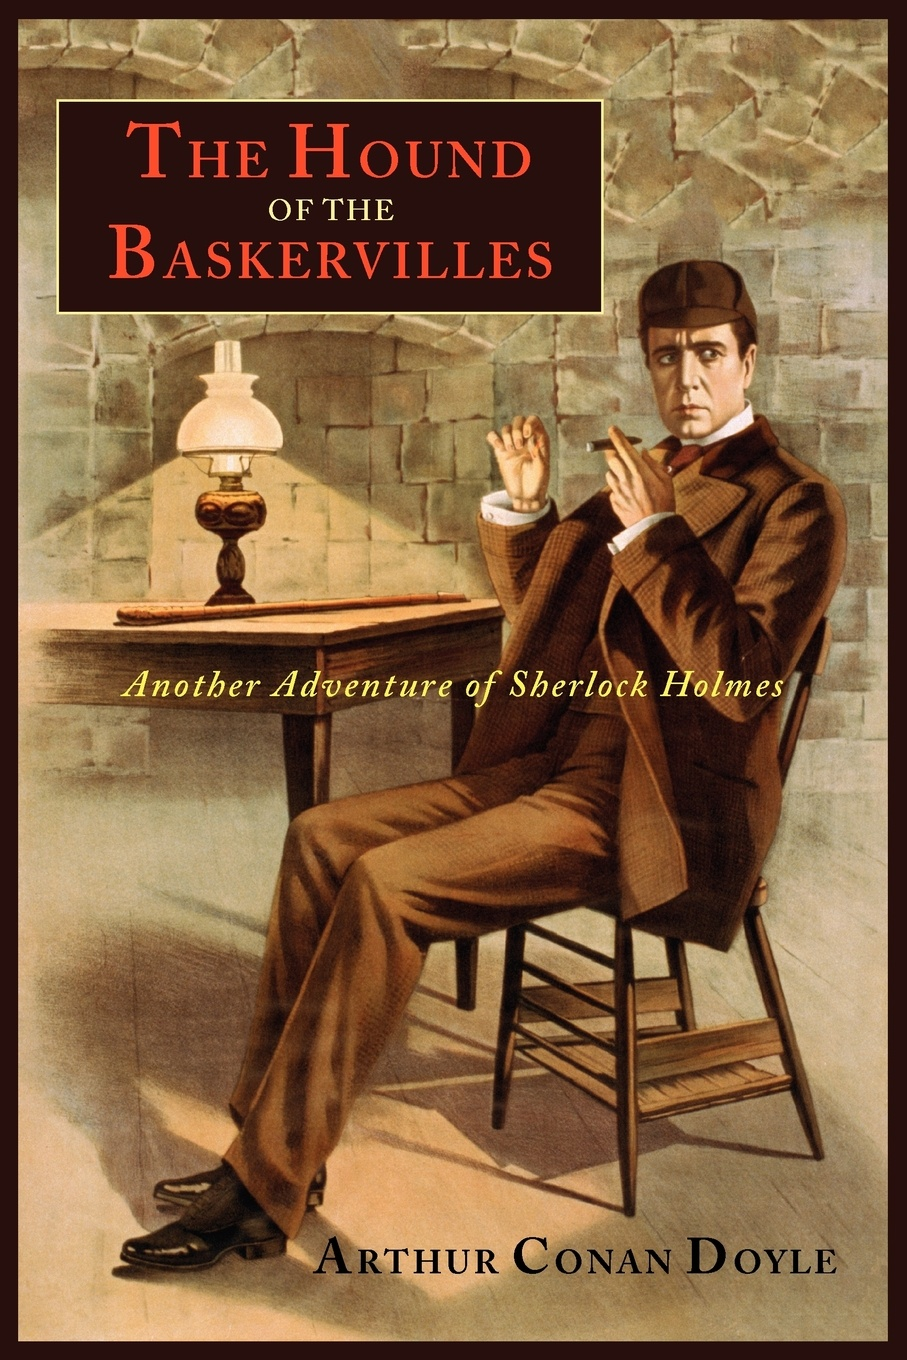 Arthur Conan Doyle The Hound of the Baskervilles. Another Adventure of Sherlock Holmes